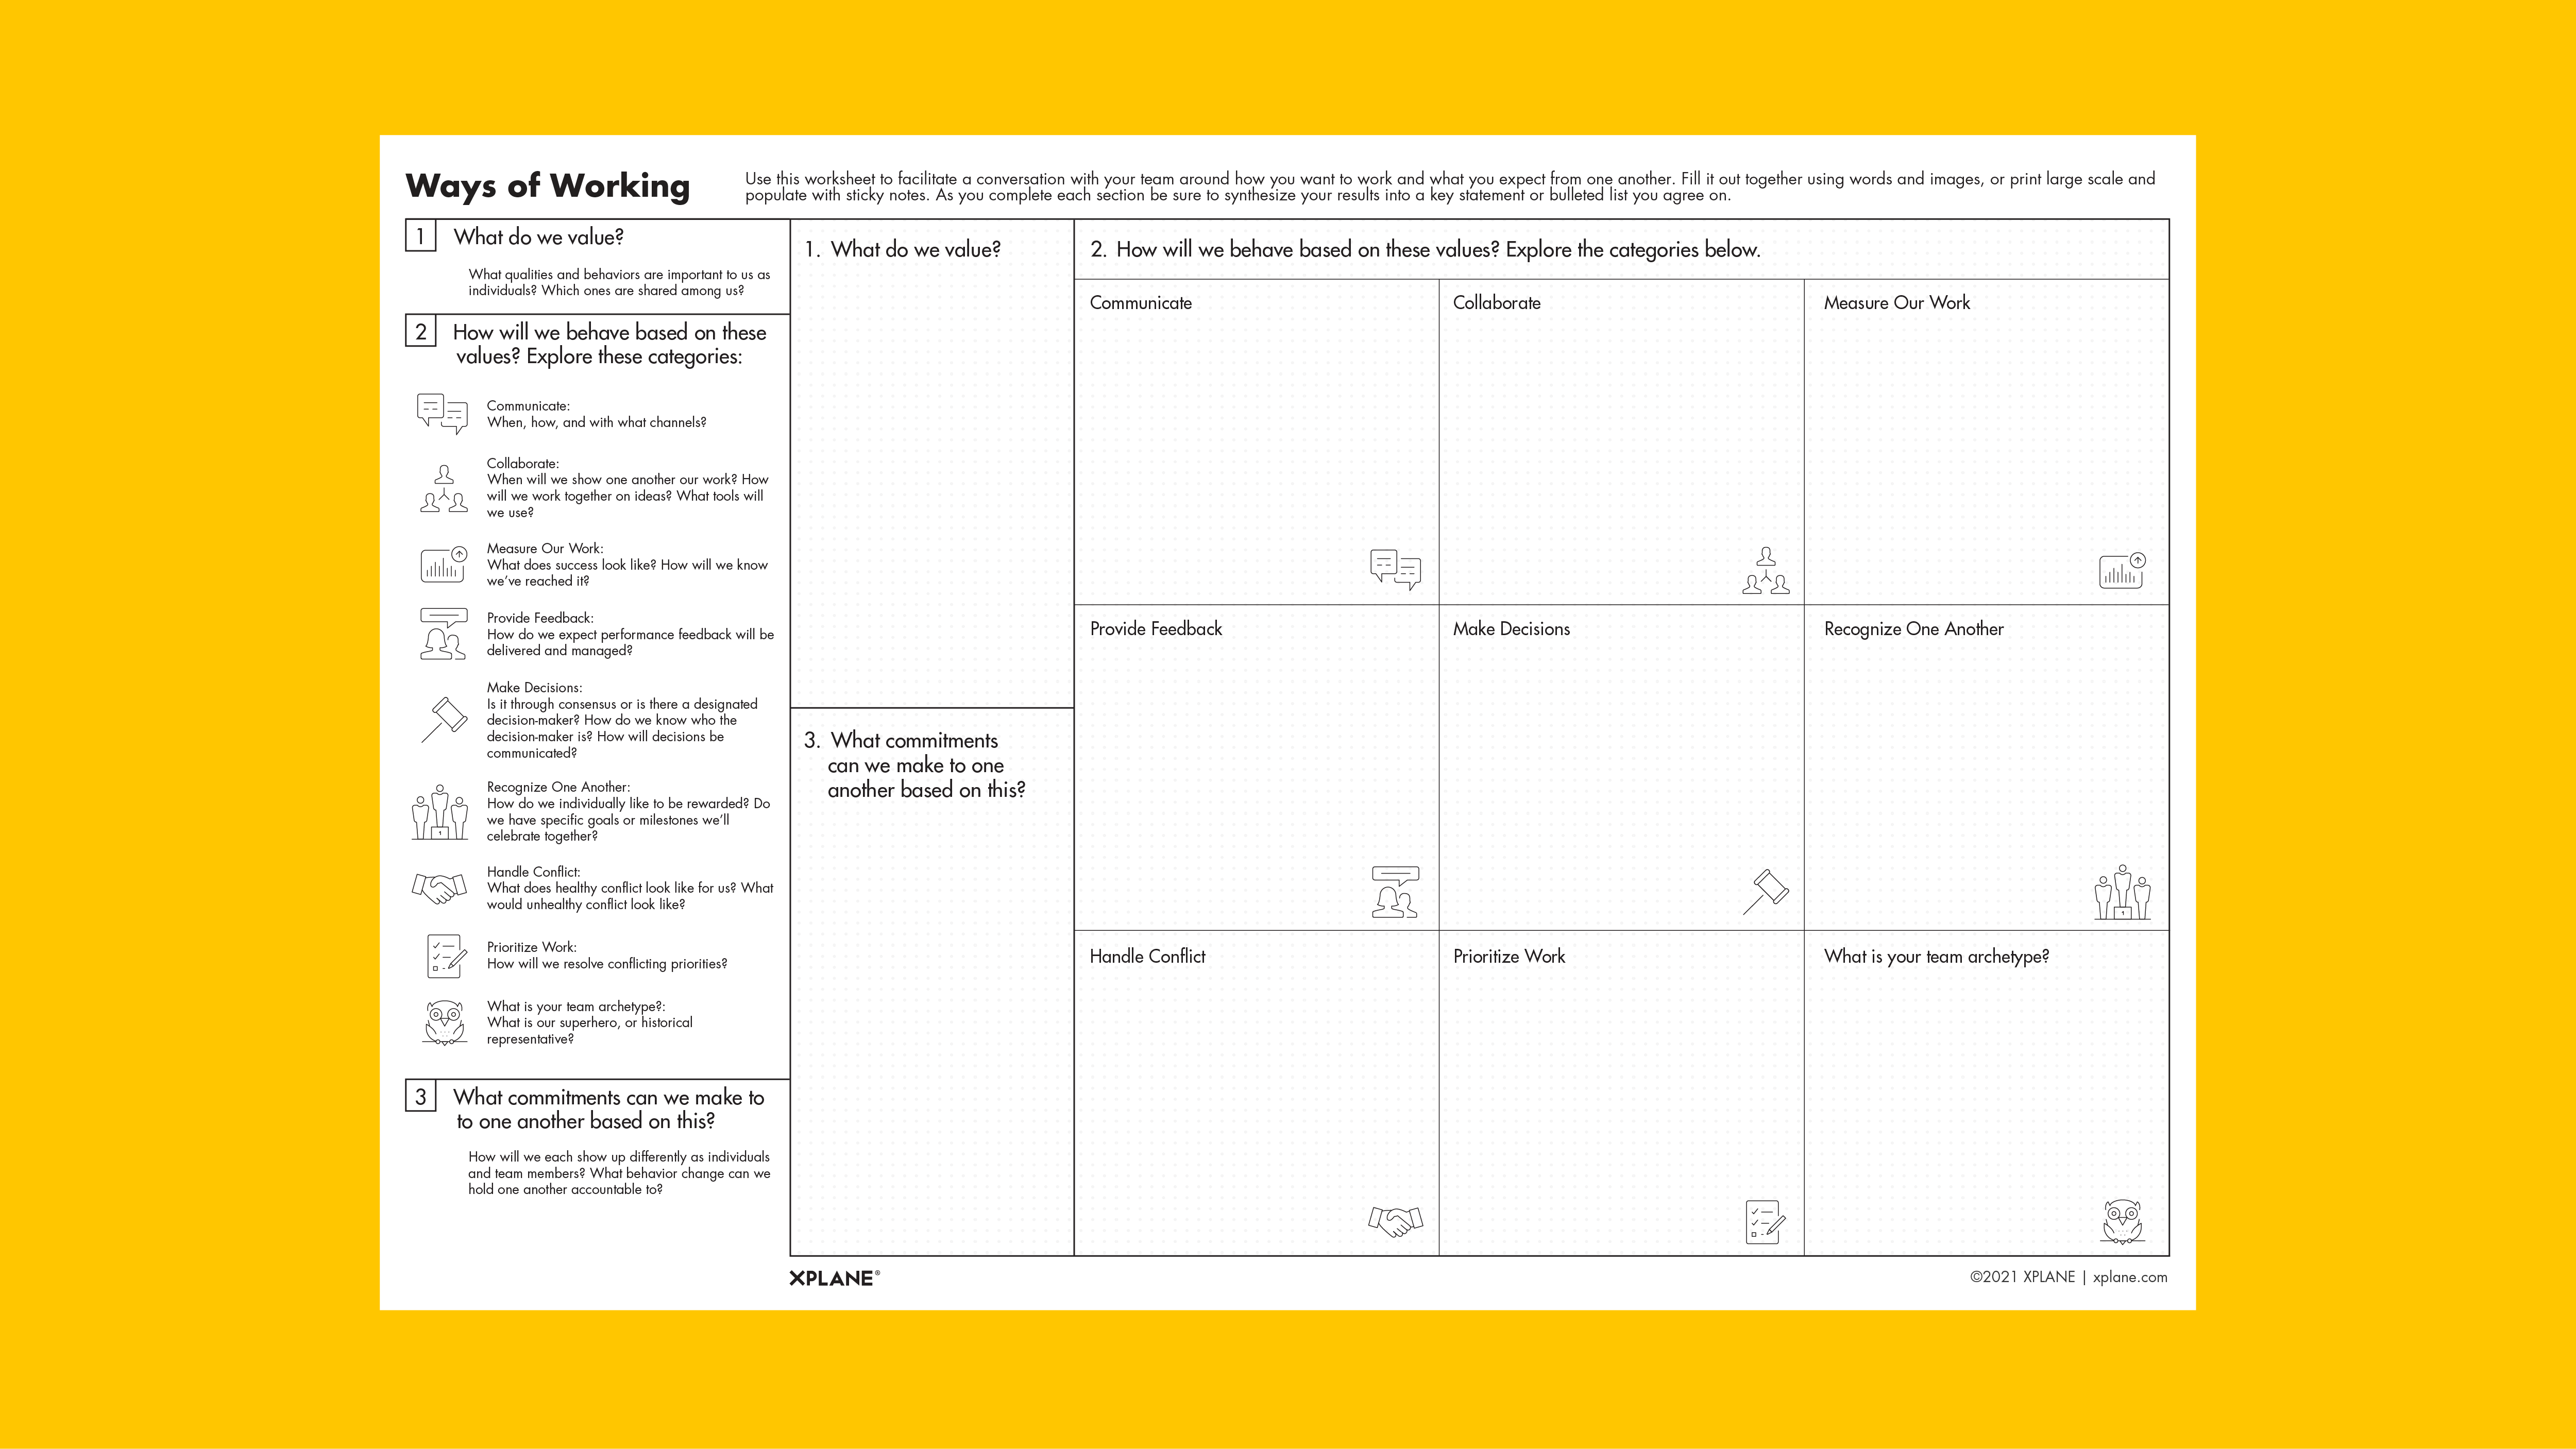 Ways of Working worksheet against yellow background